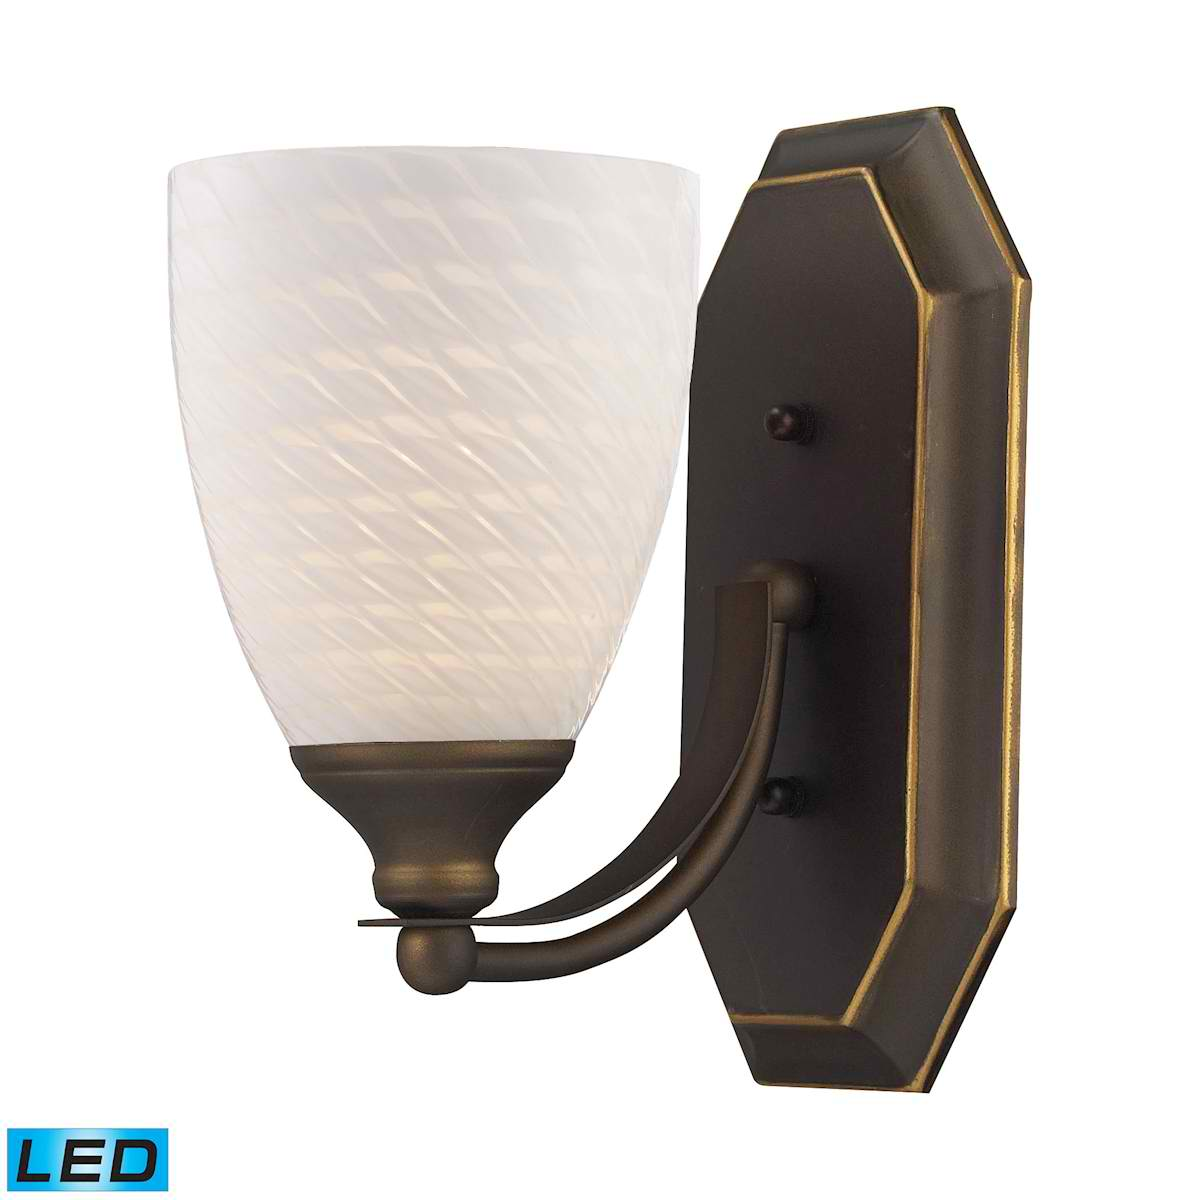 1 Light Vanity in Aged Bronze and White Swirl Glass - LED Offering Up To 800 Lumens (60 Watt Equivalent)